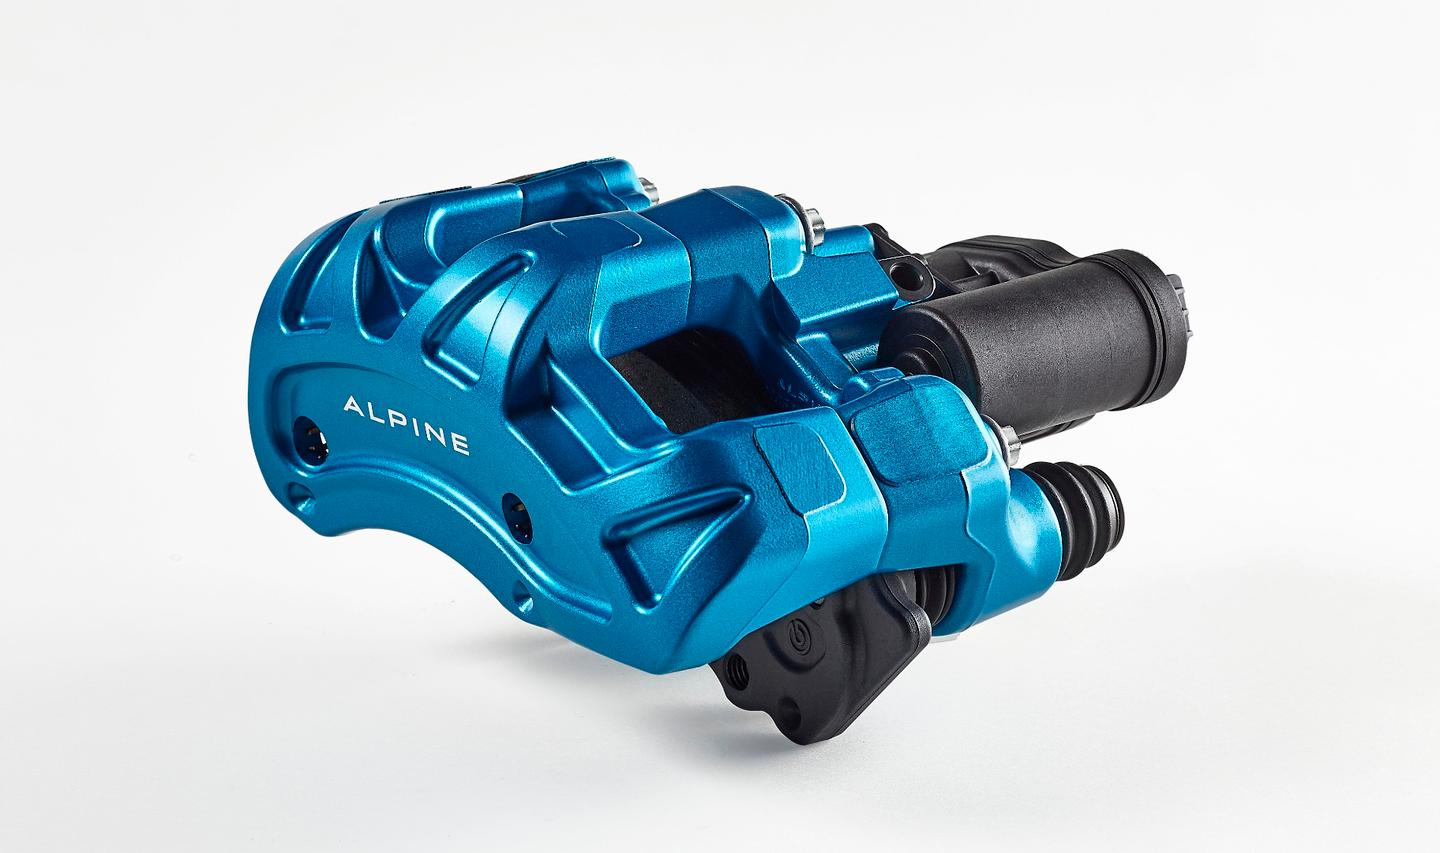 The new Brembo ECS system will debut in the Alpine